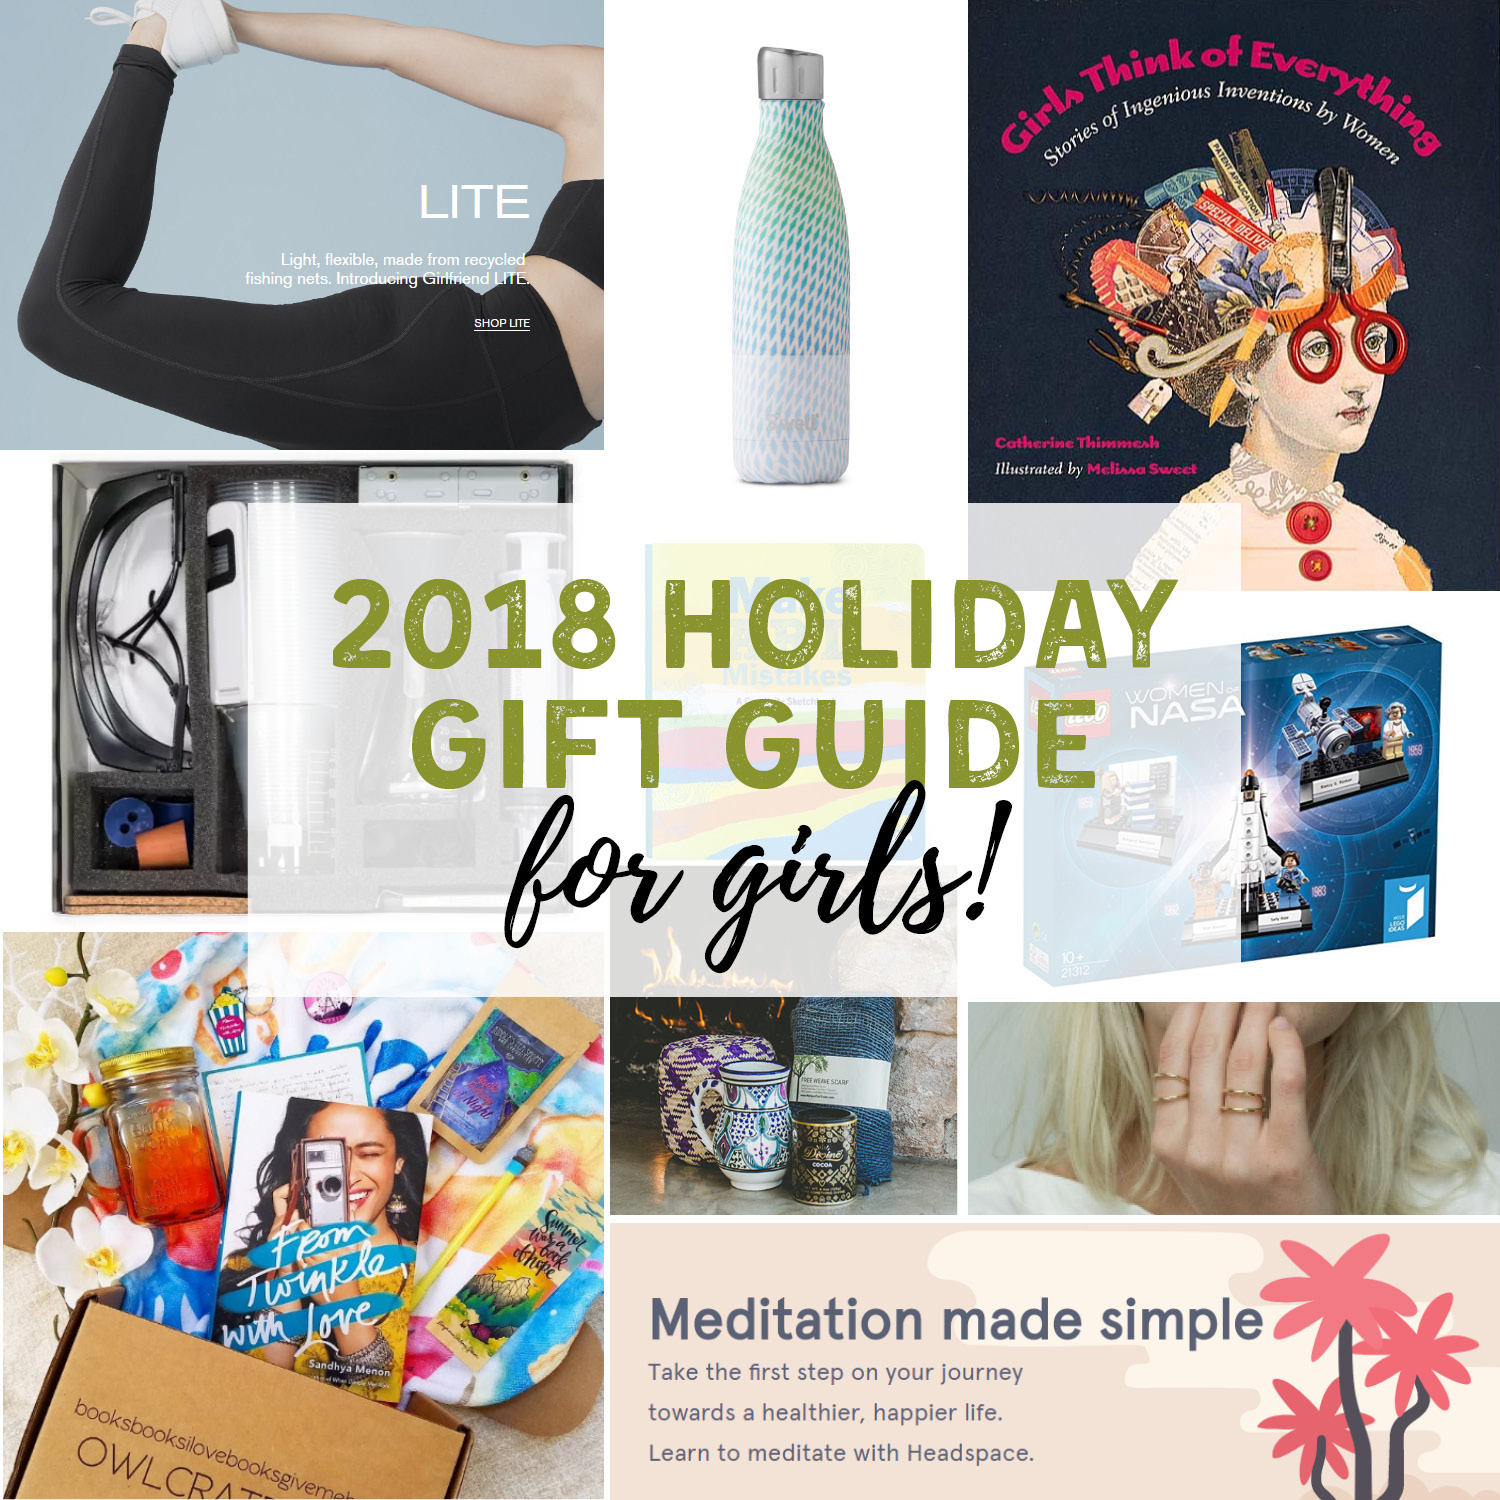 2018 Holiday Gift Guide for Girls